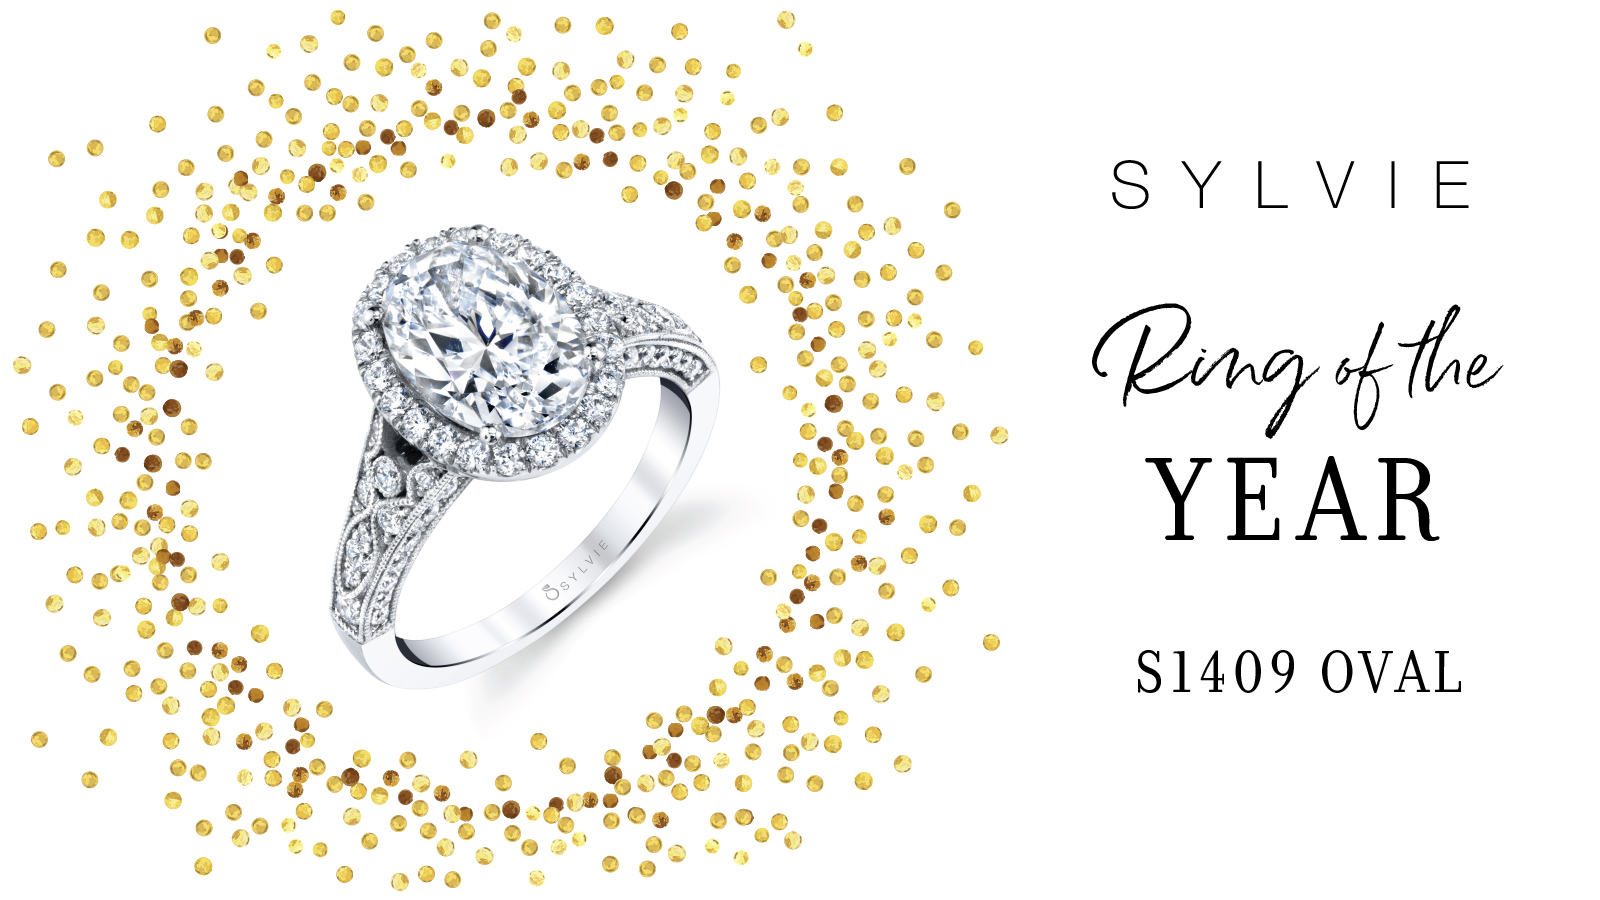 Sylvie's Ring of the Year - Engagement Ring